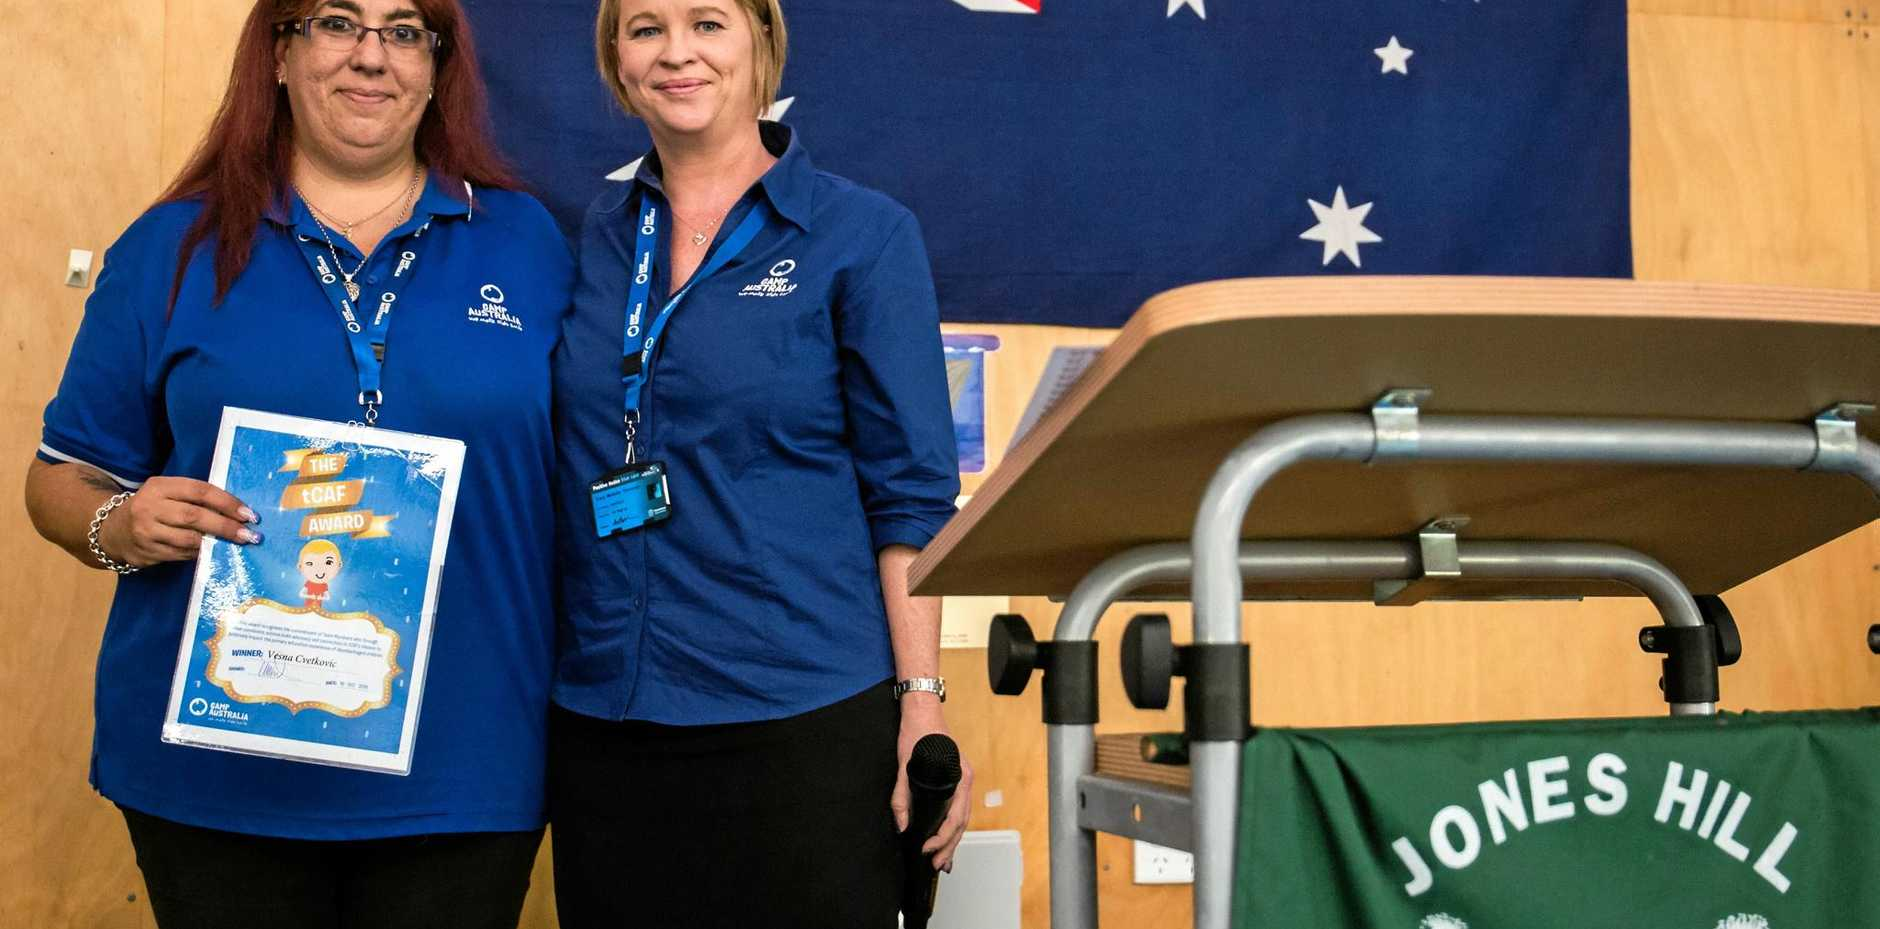 LEADING BY EXAMPLE: Child care worker Vesna Cvetkovic and Camp Australia regional manager Tracy Thompson at Jones Hill Primary School.